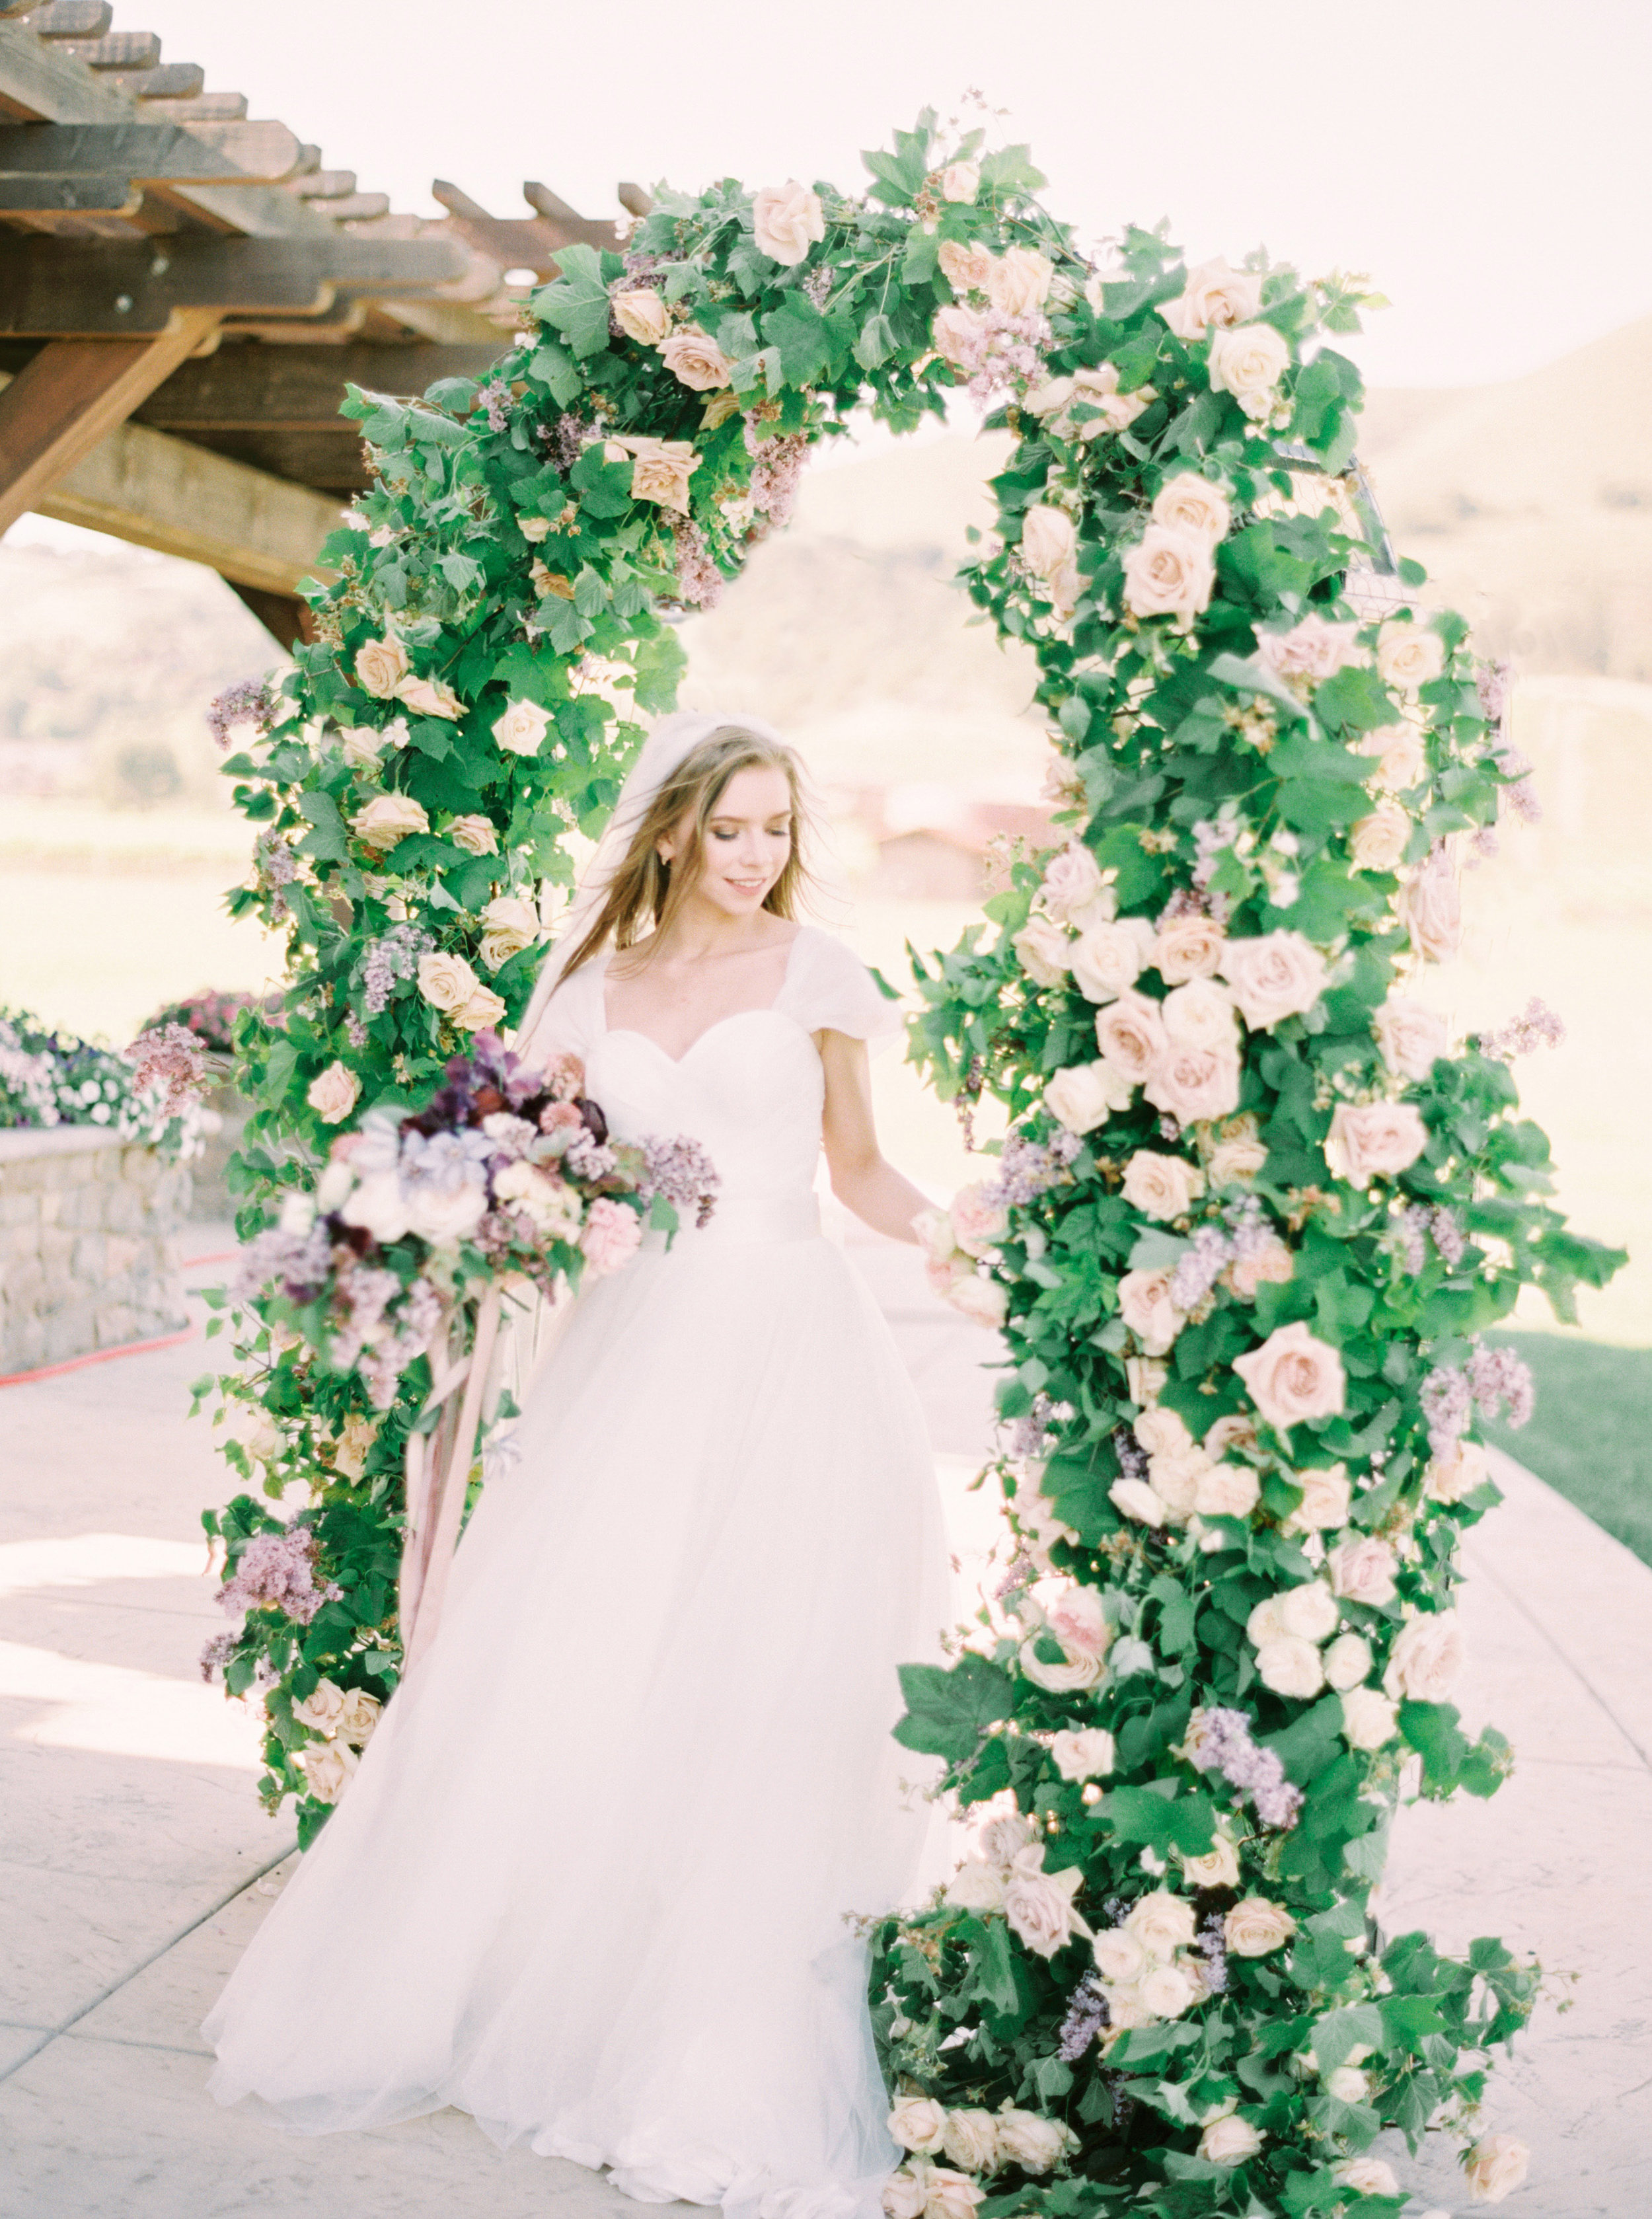 This-Love-of-Yours-Kirigin-Cellars-Flower-Arch-Styled-Shoot-116.jpg